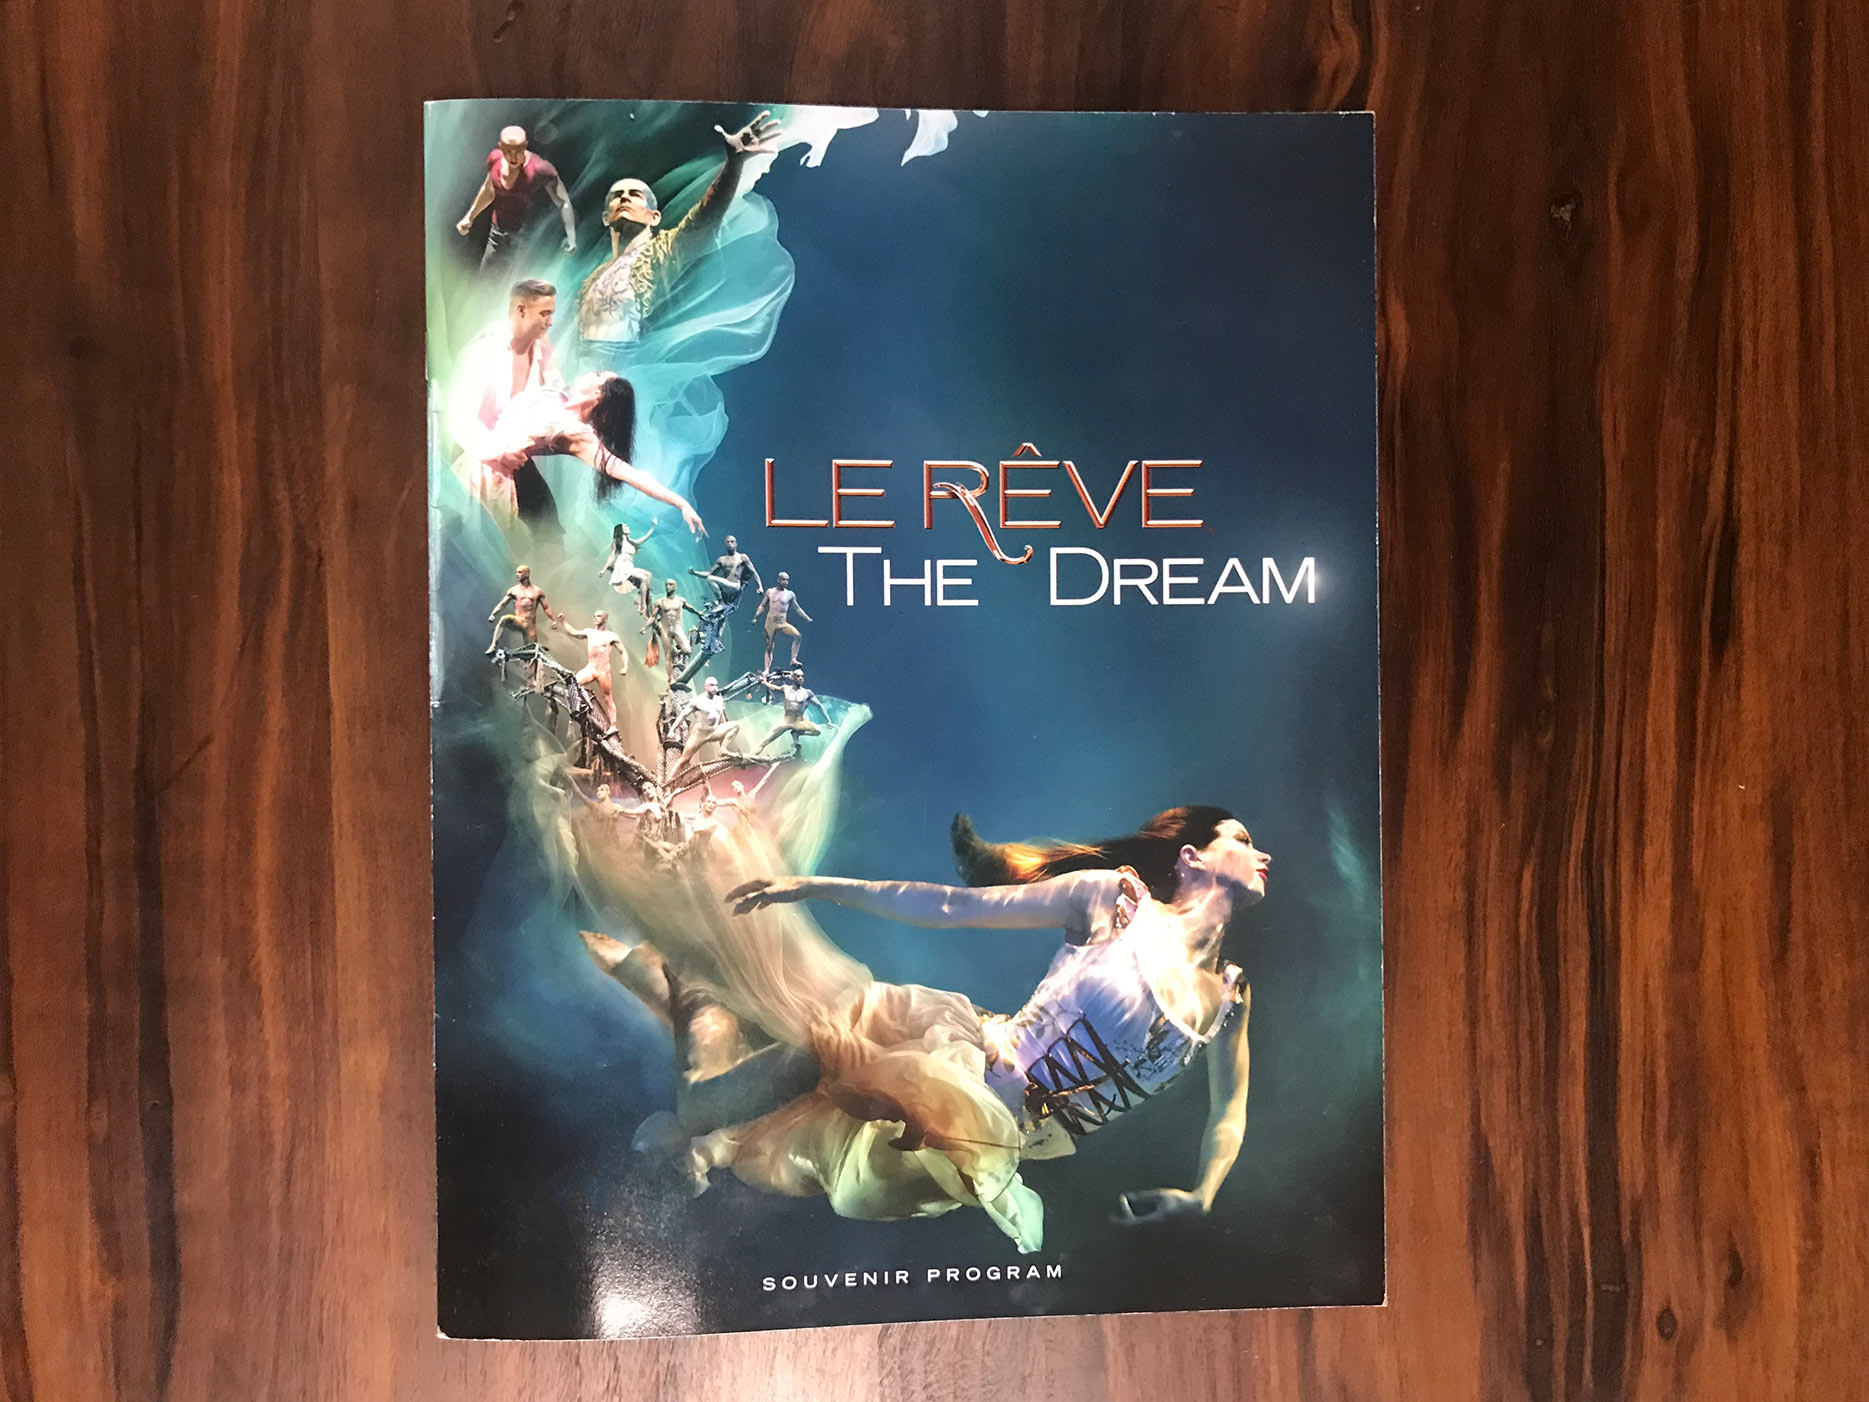 Souvenir program for Le Reve the show at the Wynn Las Vegas